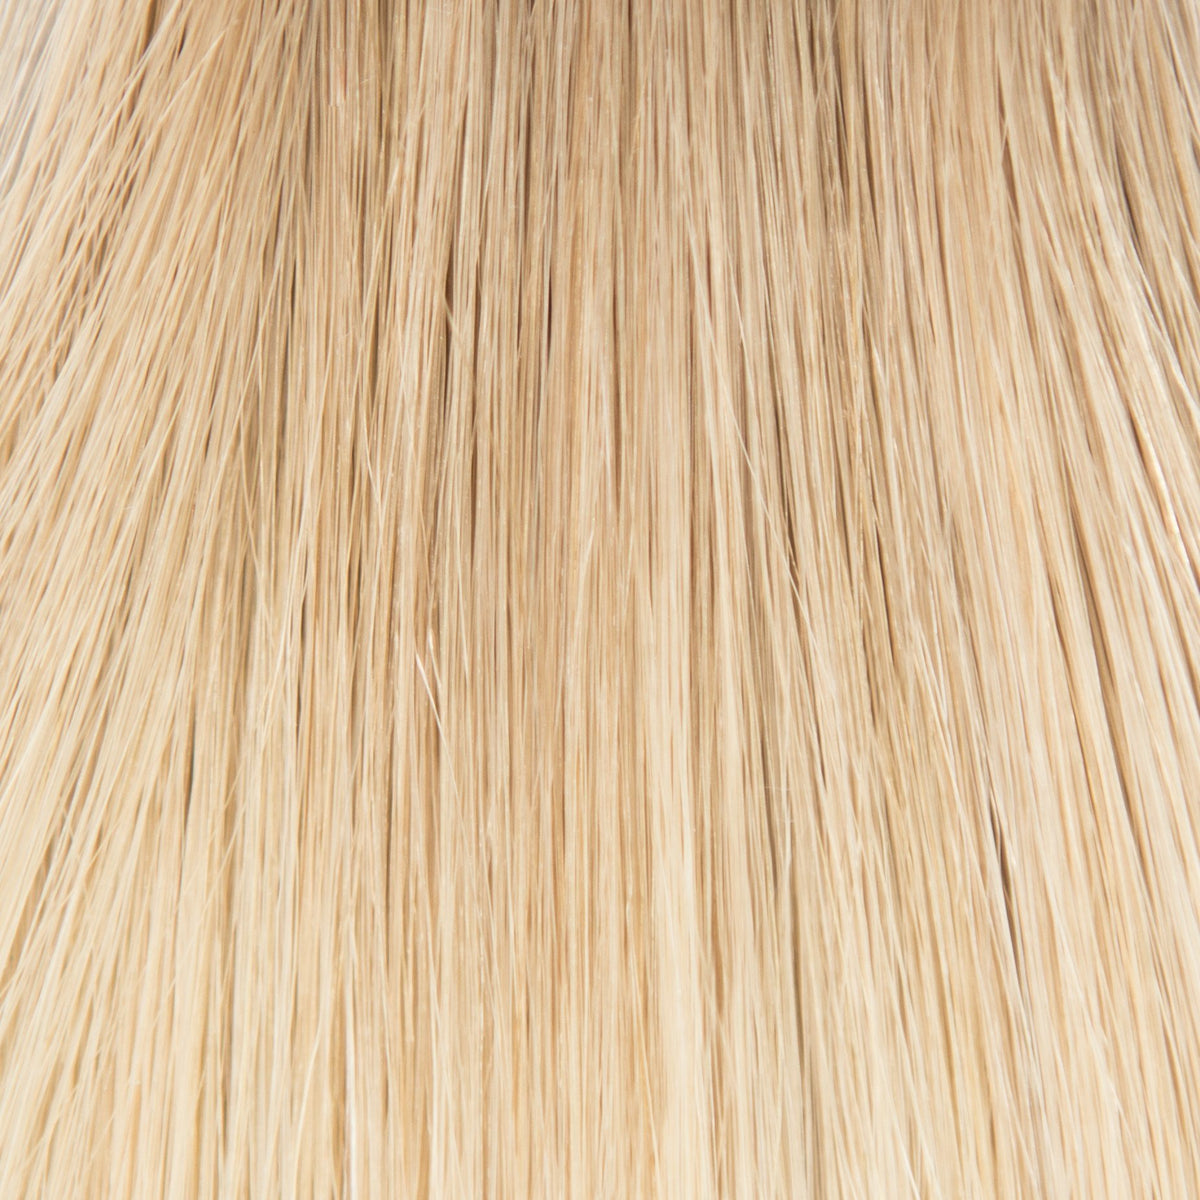 Keratin - Laced Hair Keratin Bond Extensions Rooted #8/16/22 (Rooted Buttercream)